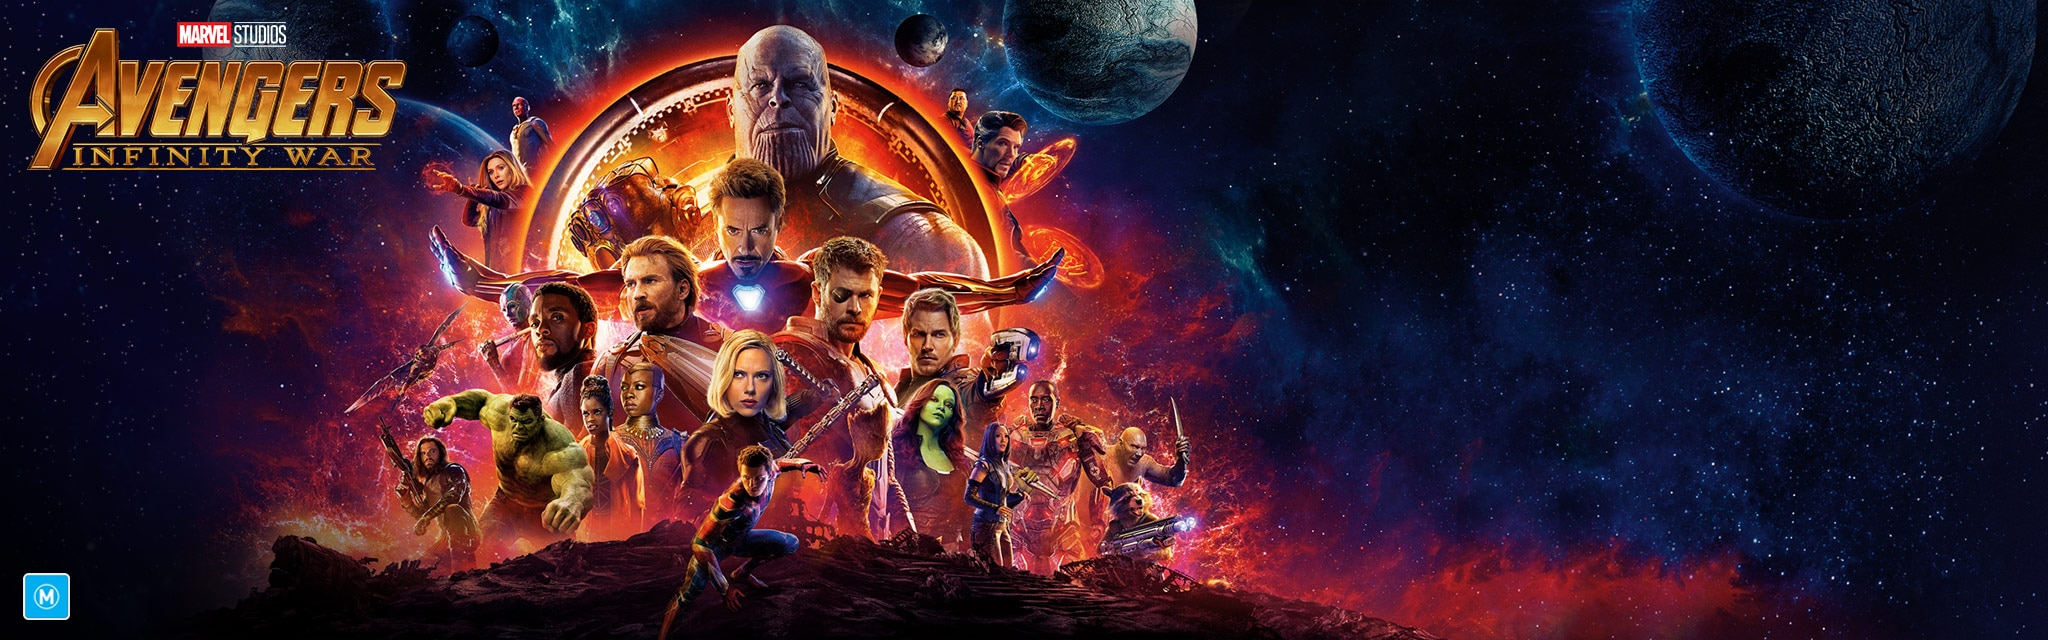 Get tickets to Avengers Infinity War